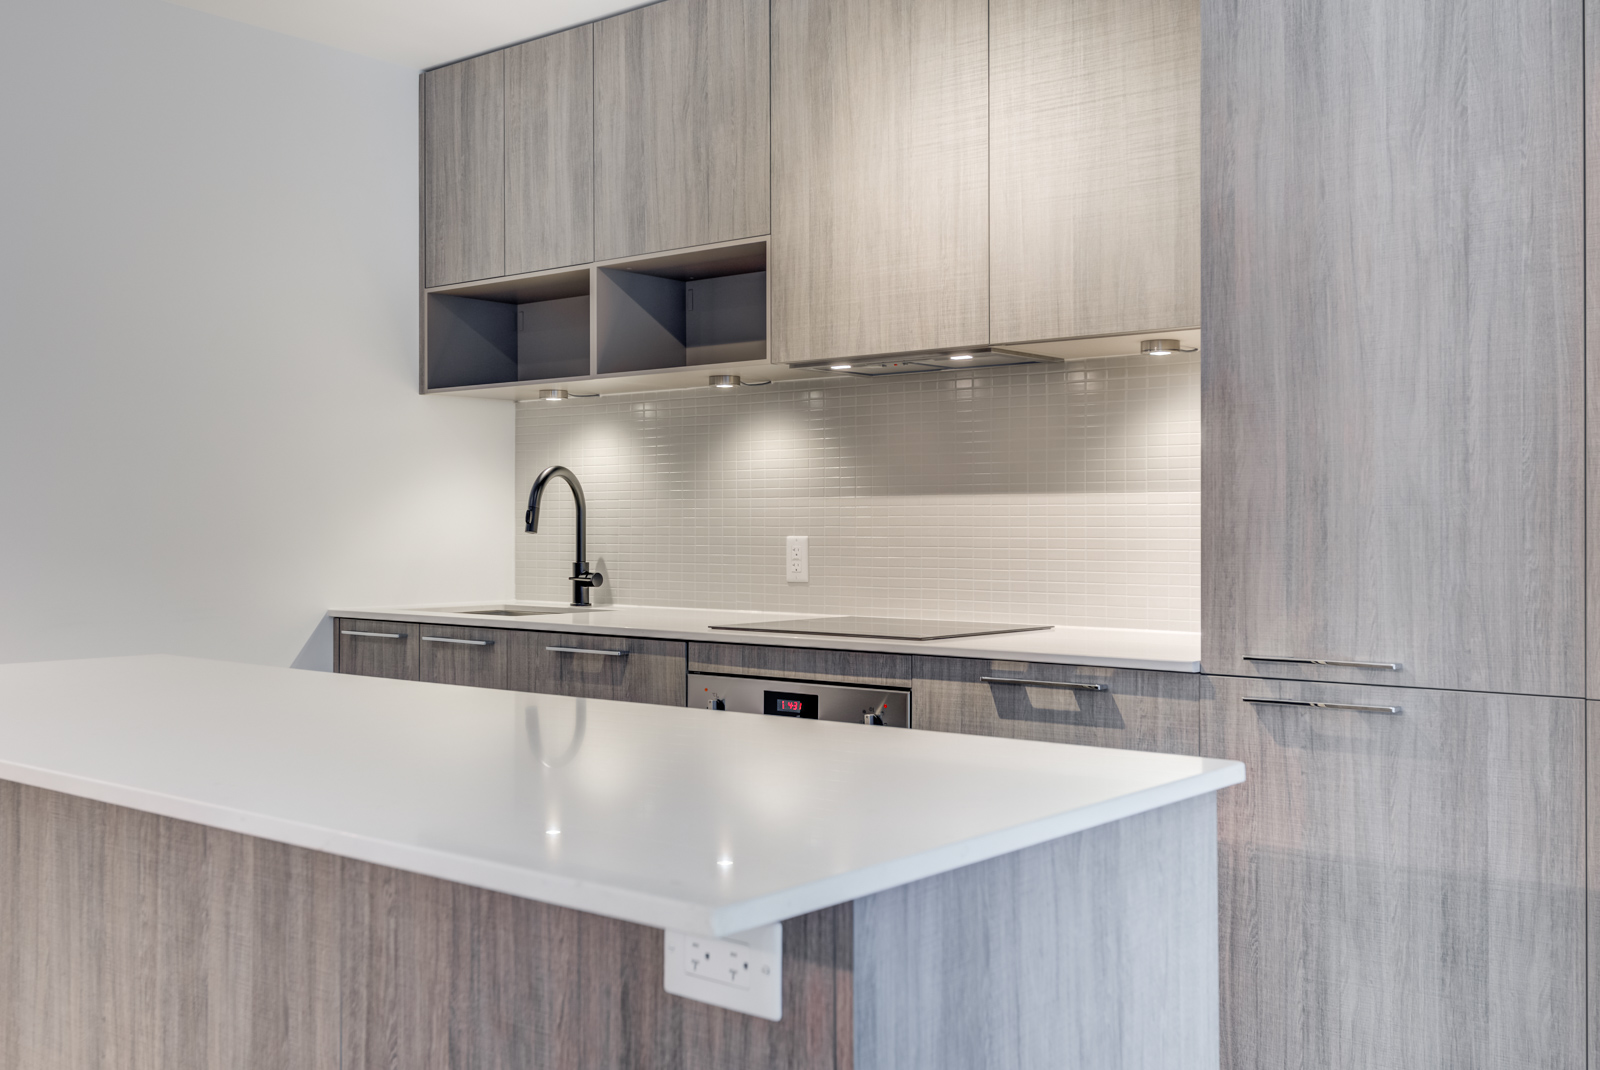 Close up of kitchen island with white counter-top and brown base, as well as kitchen cabinets and back-splash.